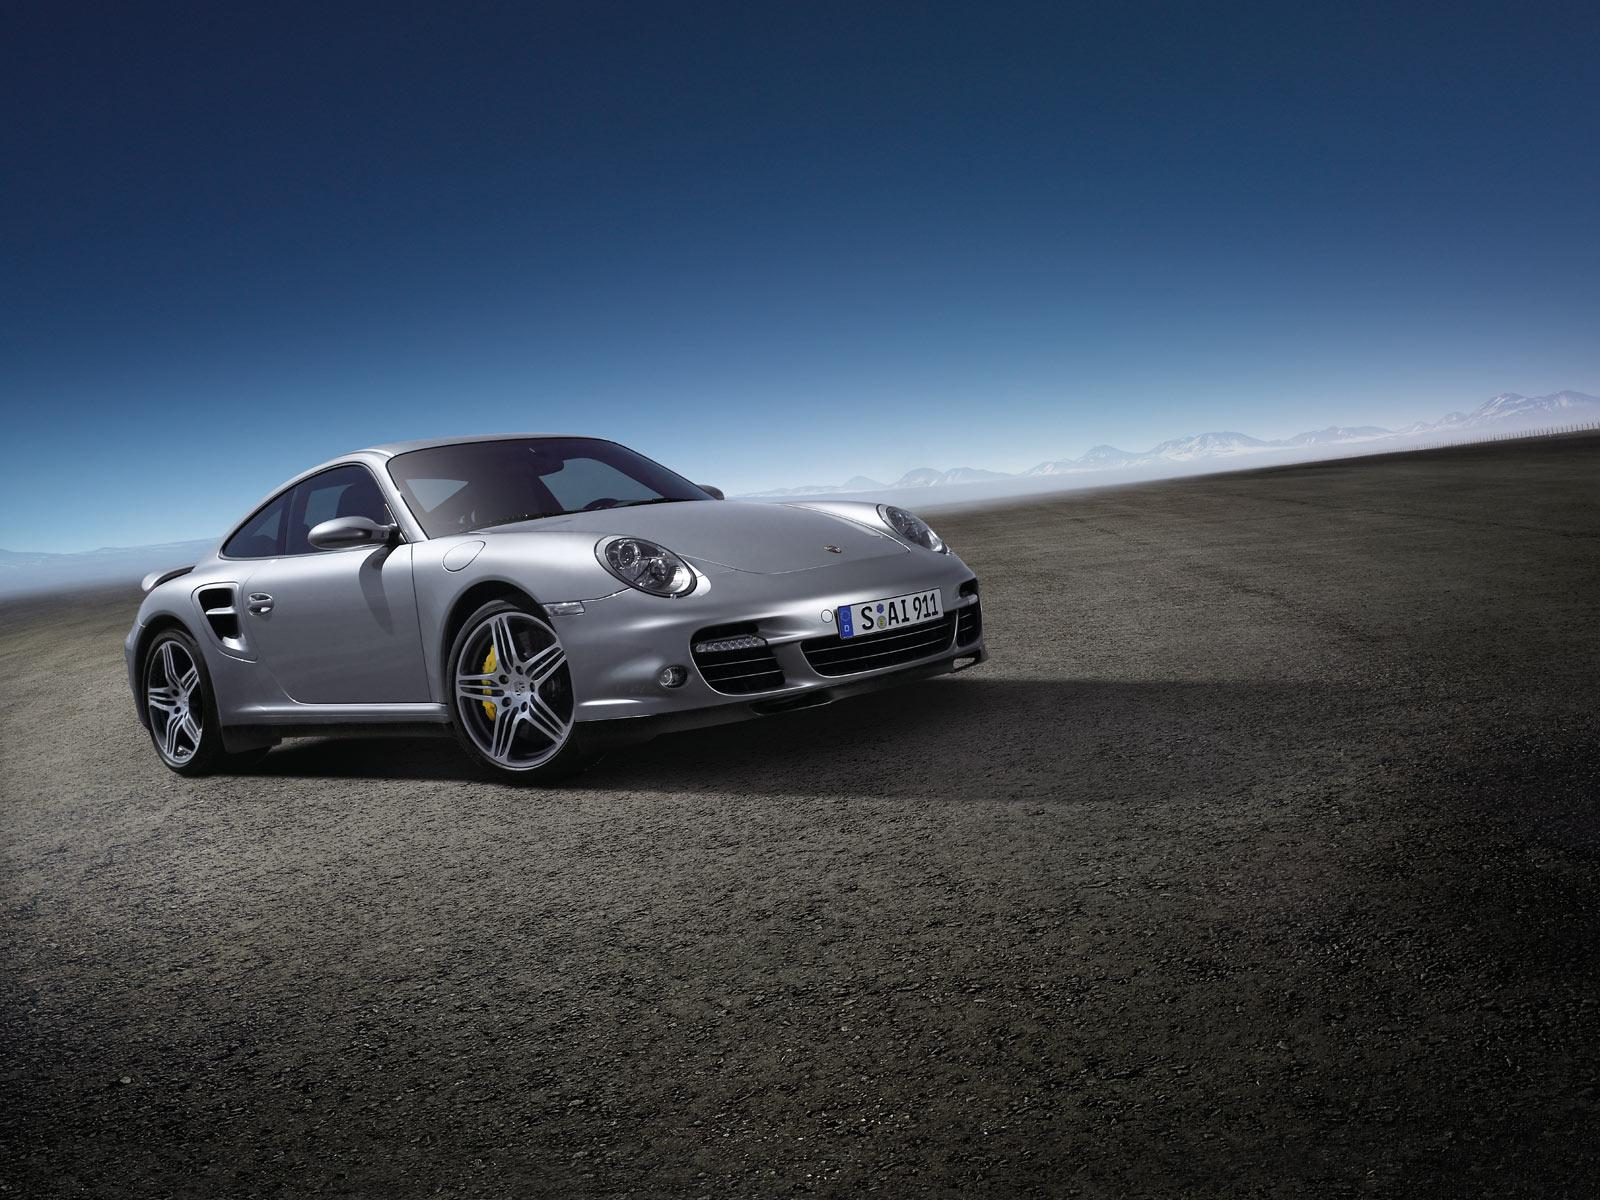 2009 Porsche 911 Turbo News And Information